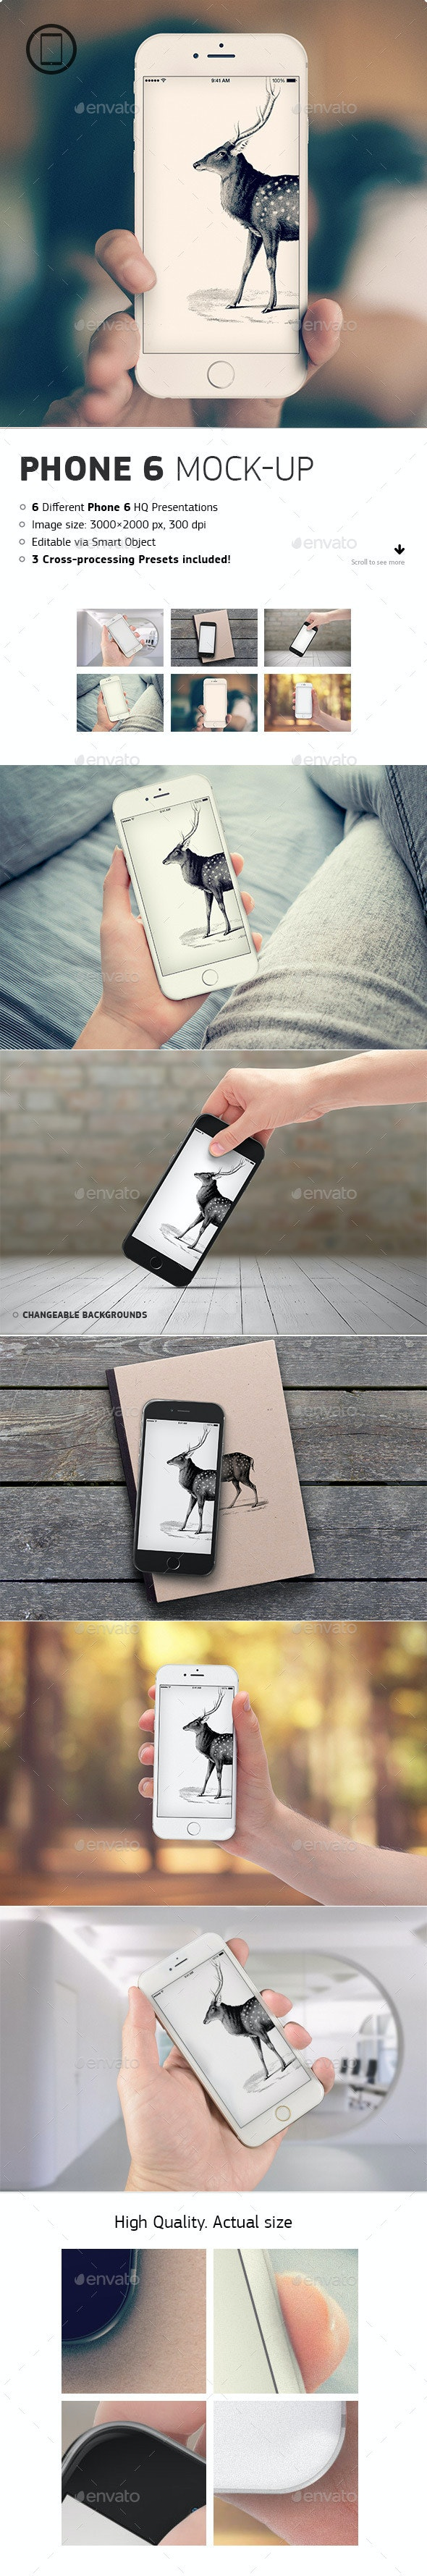 Realistic Phone 6 Mock-up - Mobile Displays